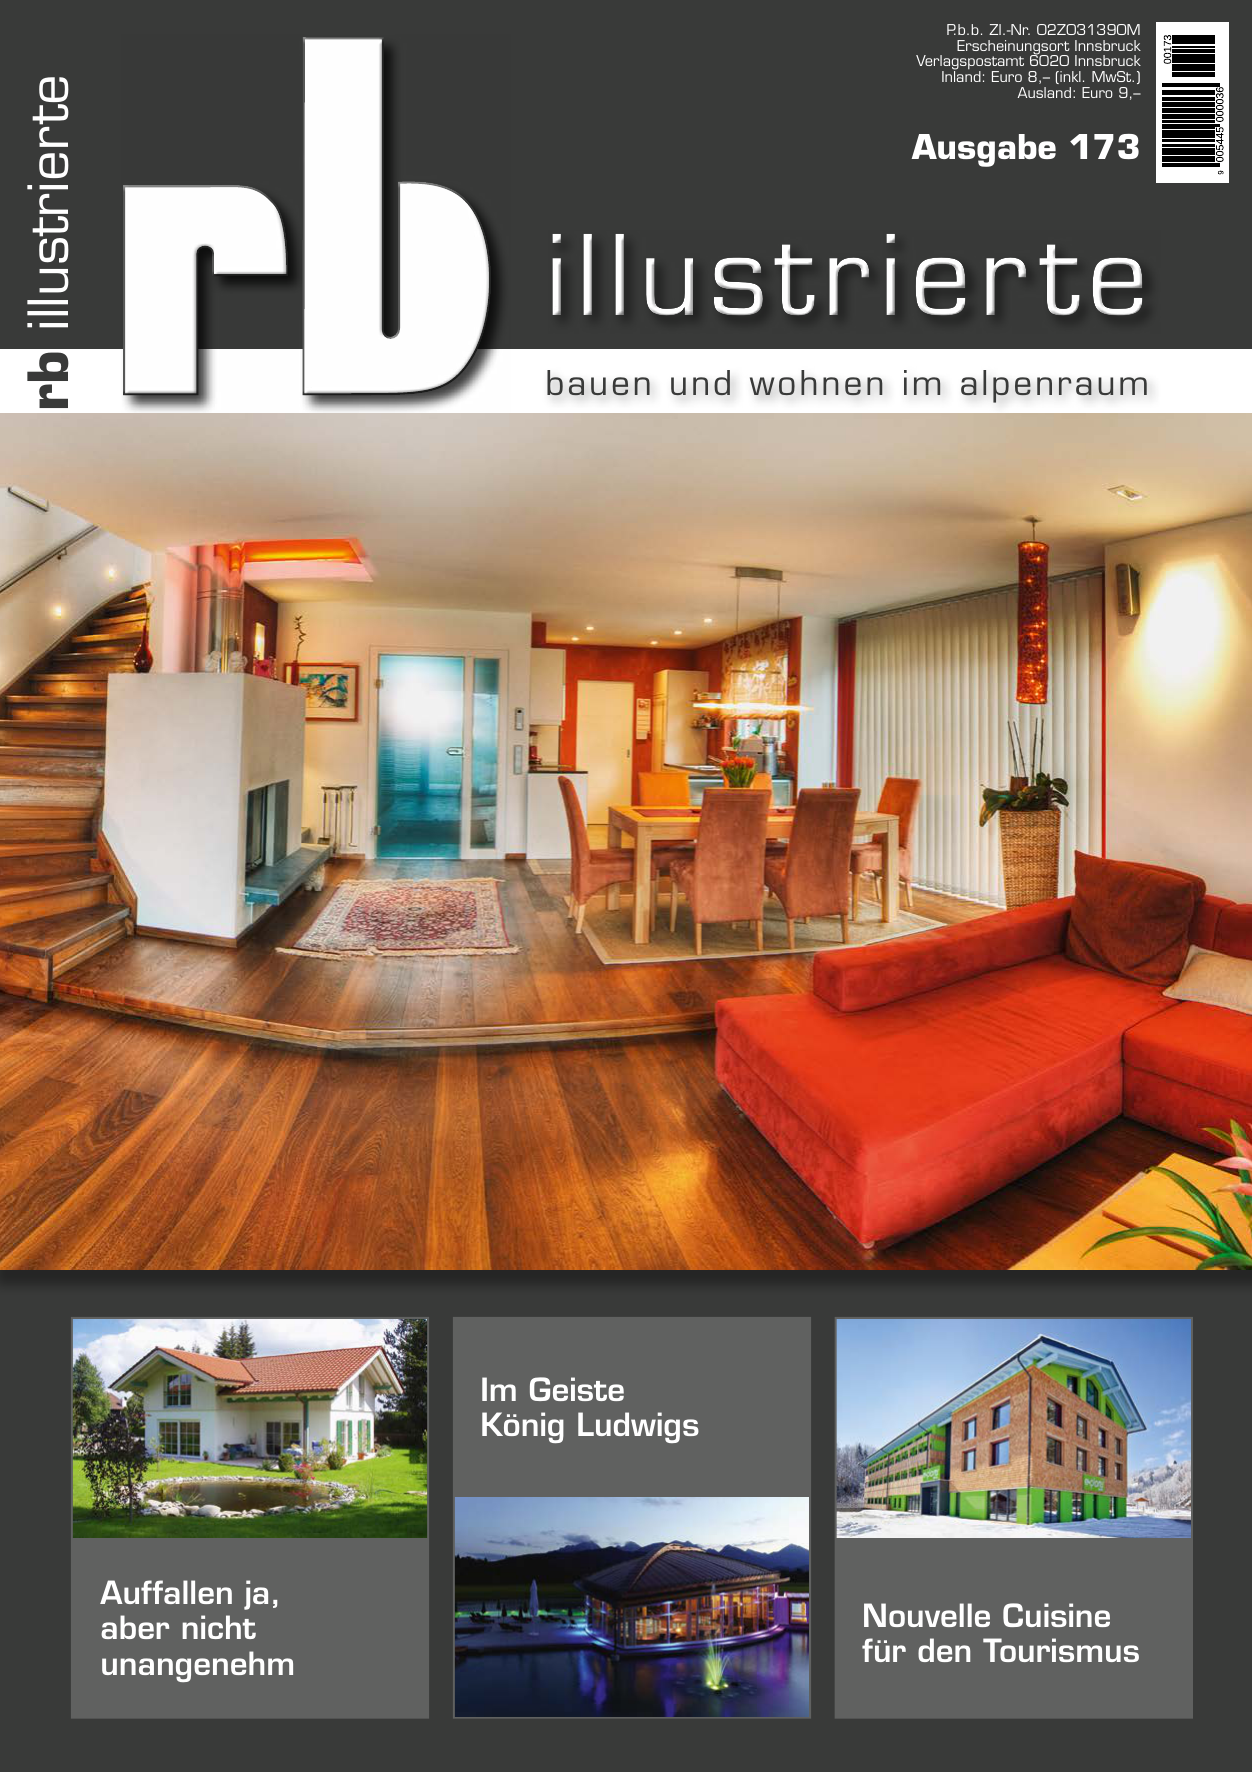 illustrierte - Architekt Fussenegger, Bad Kohlgrub